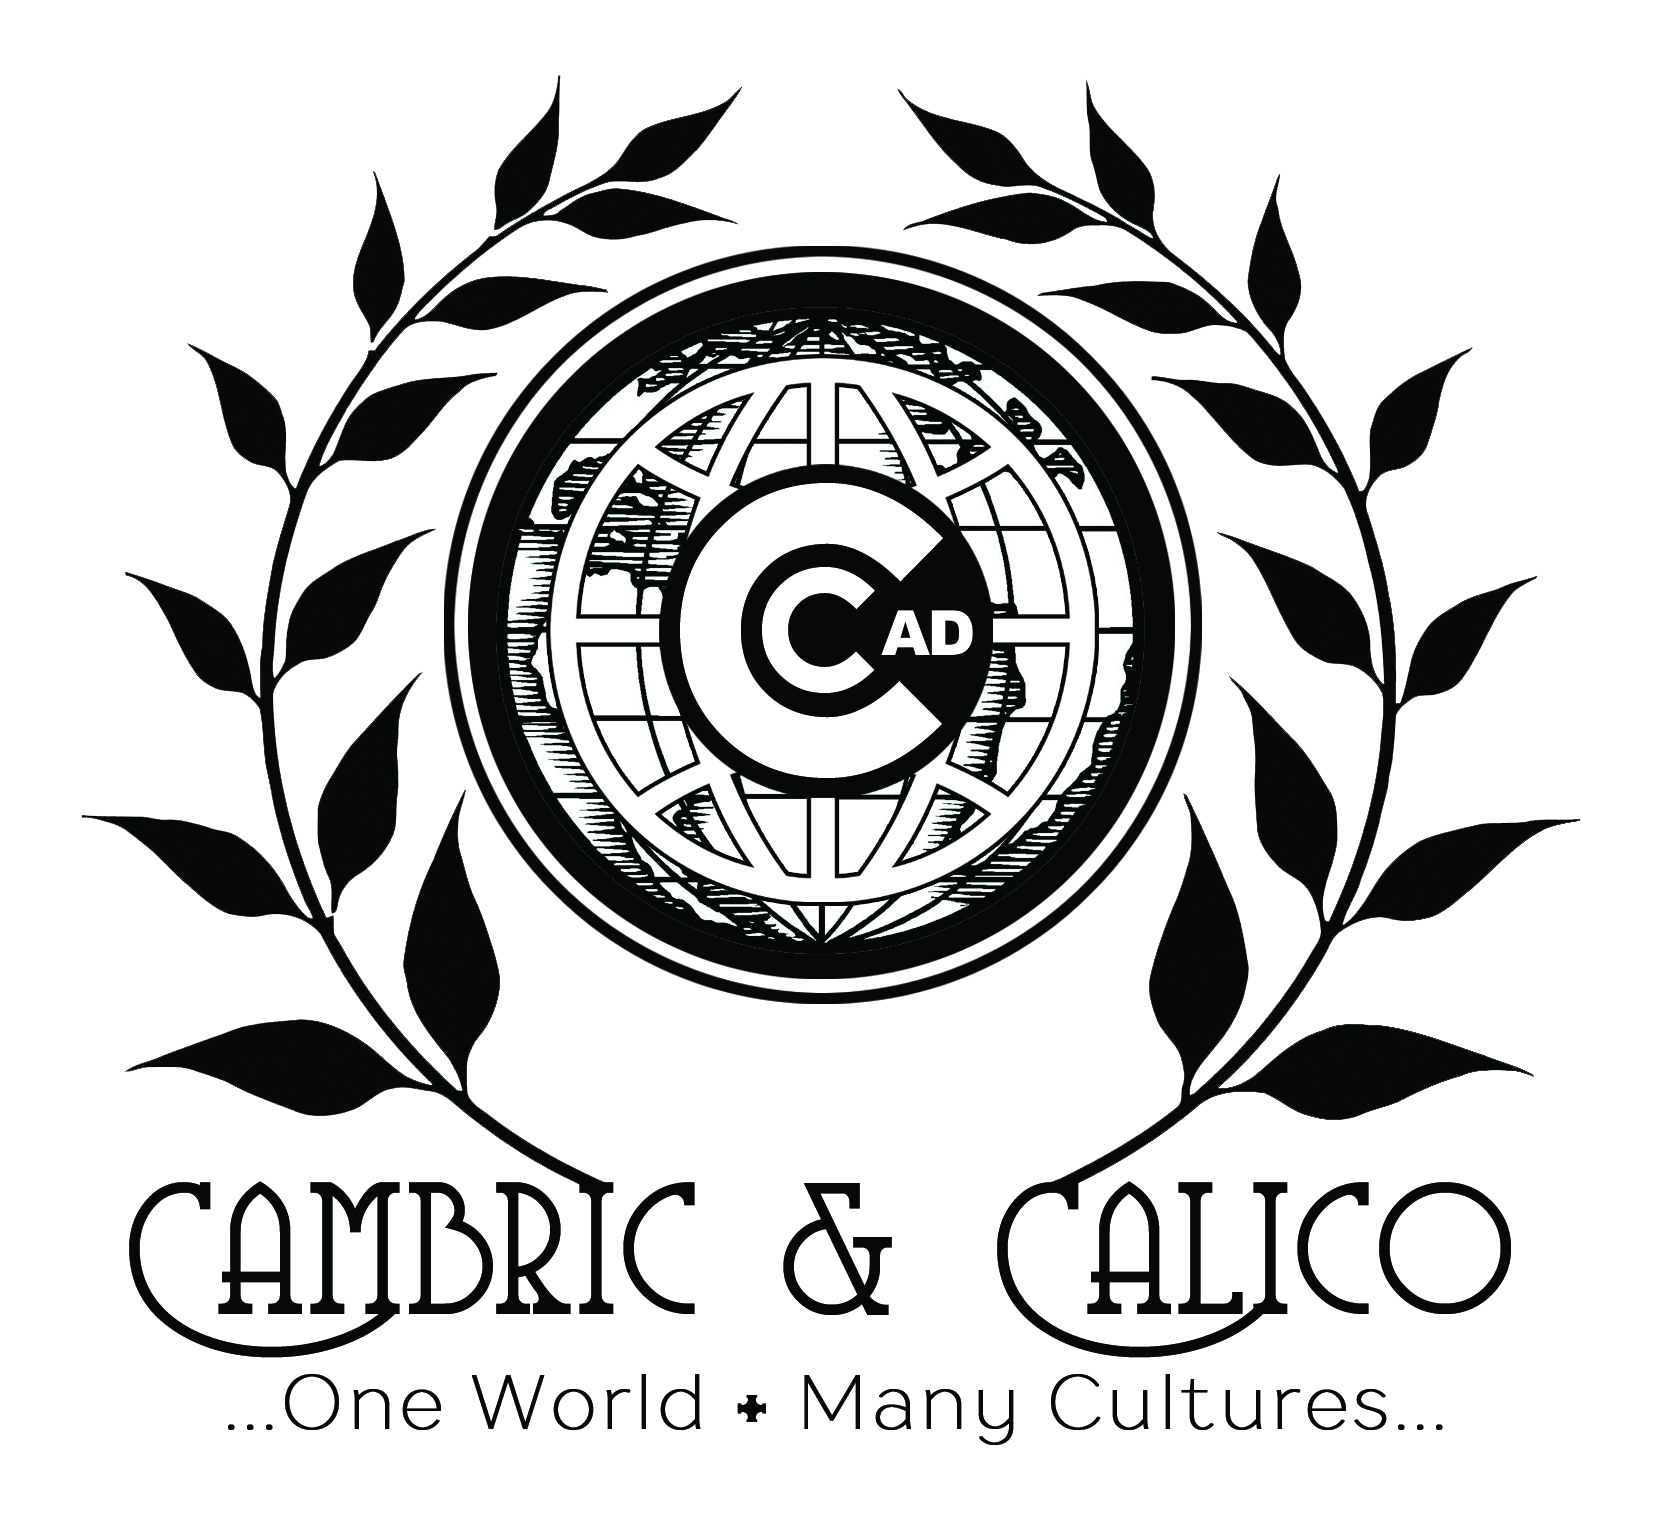 Cambric and Calico Clothing Company